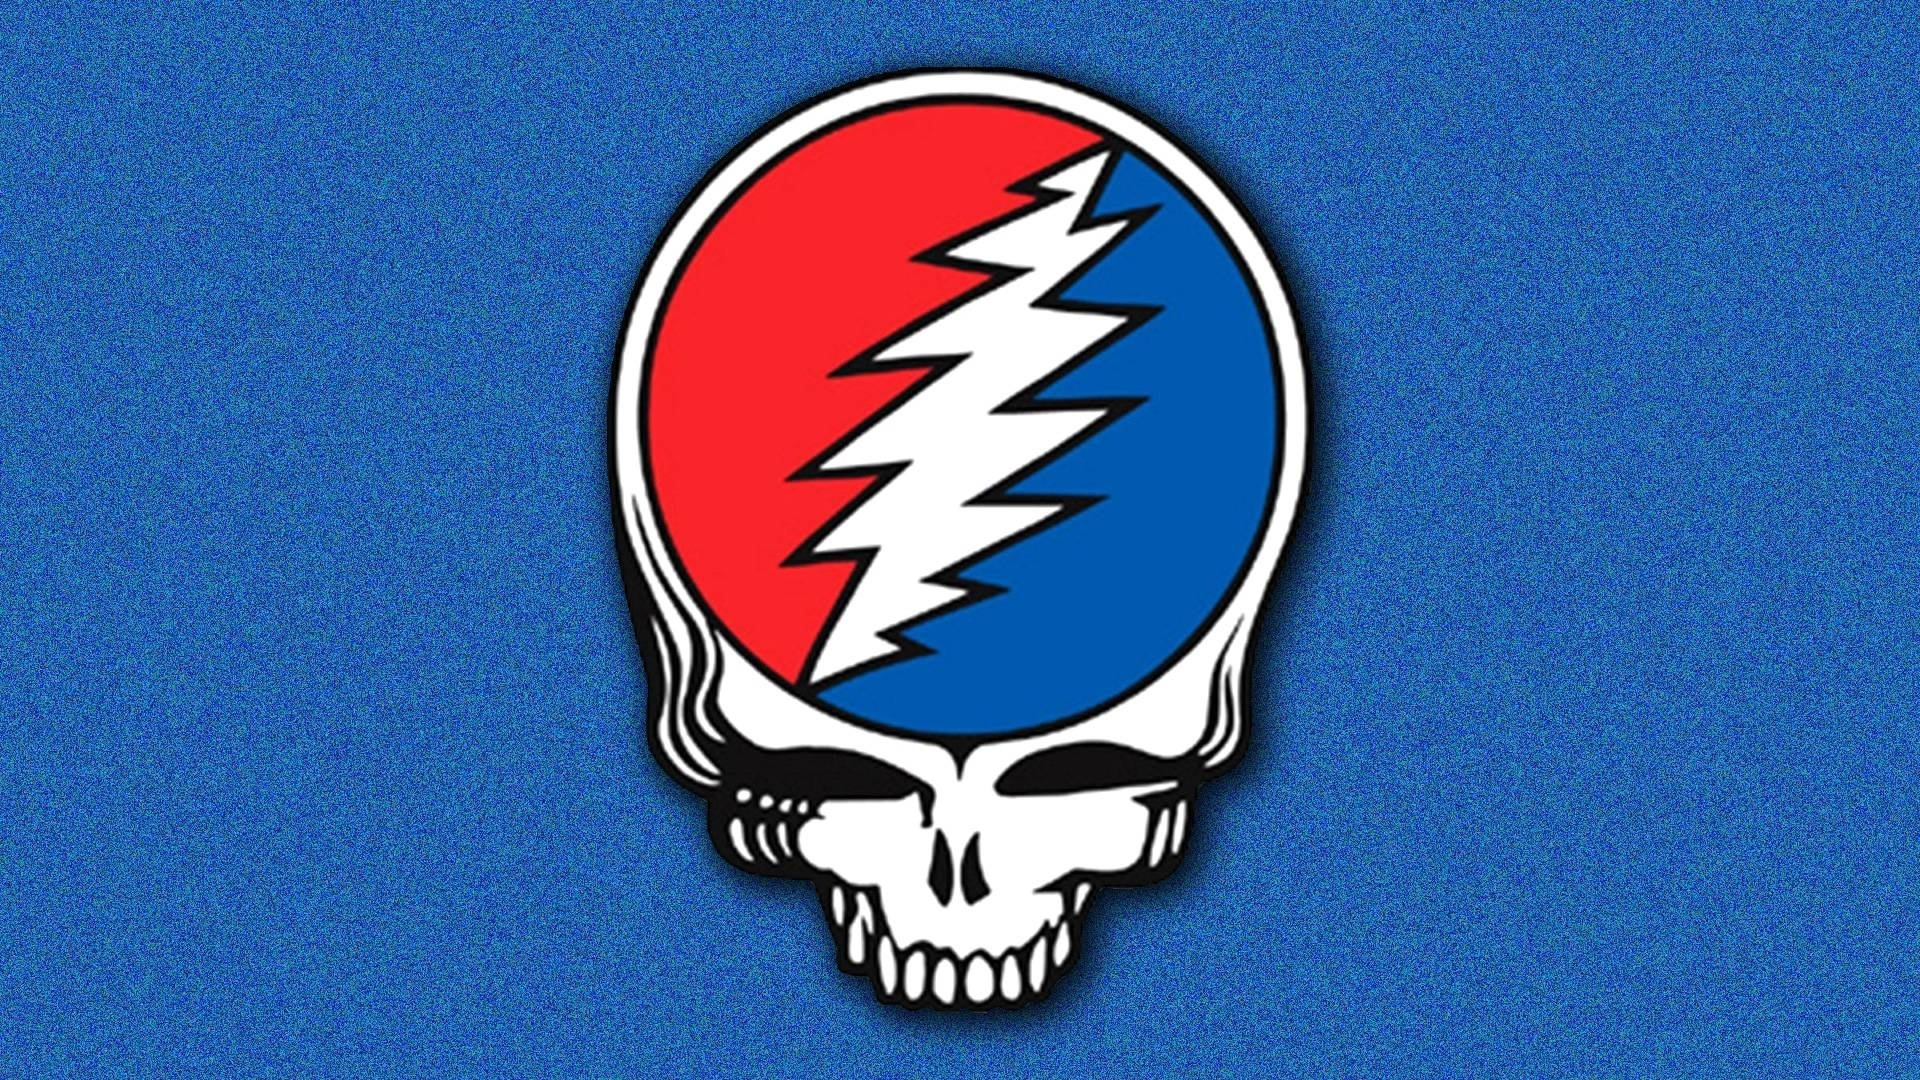 grateful dead backgrounds - wallpaper cave